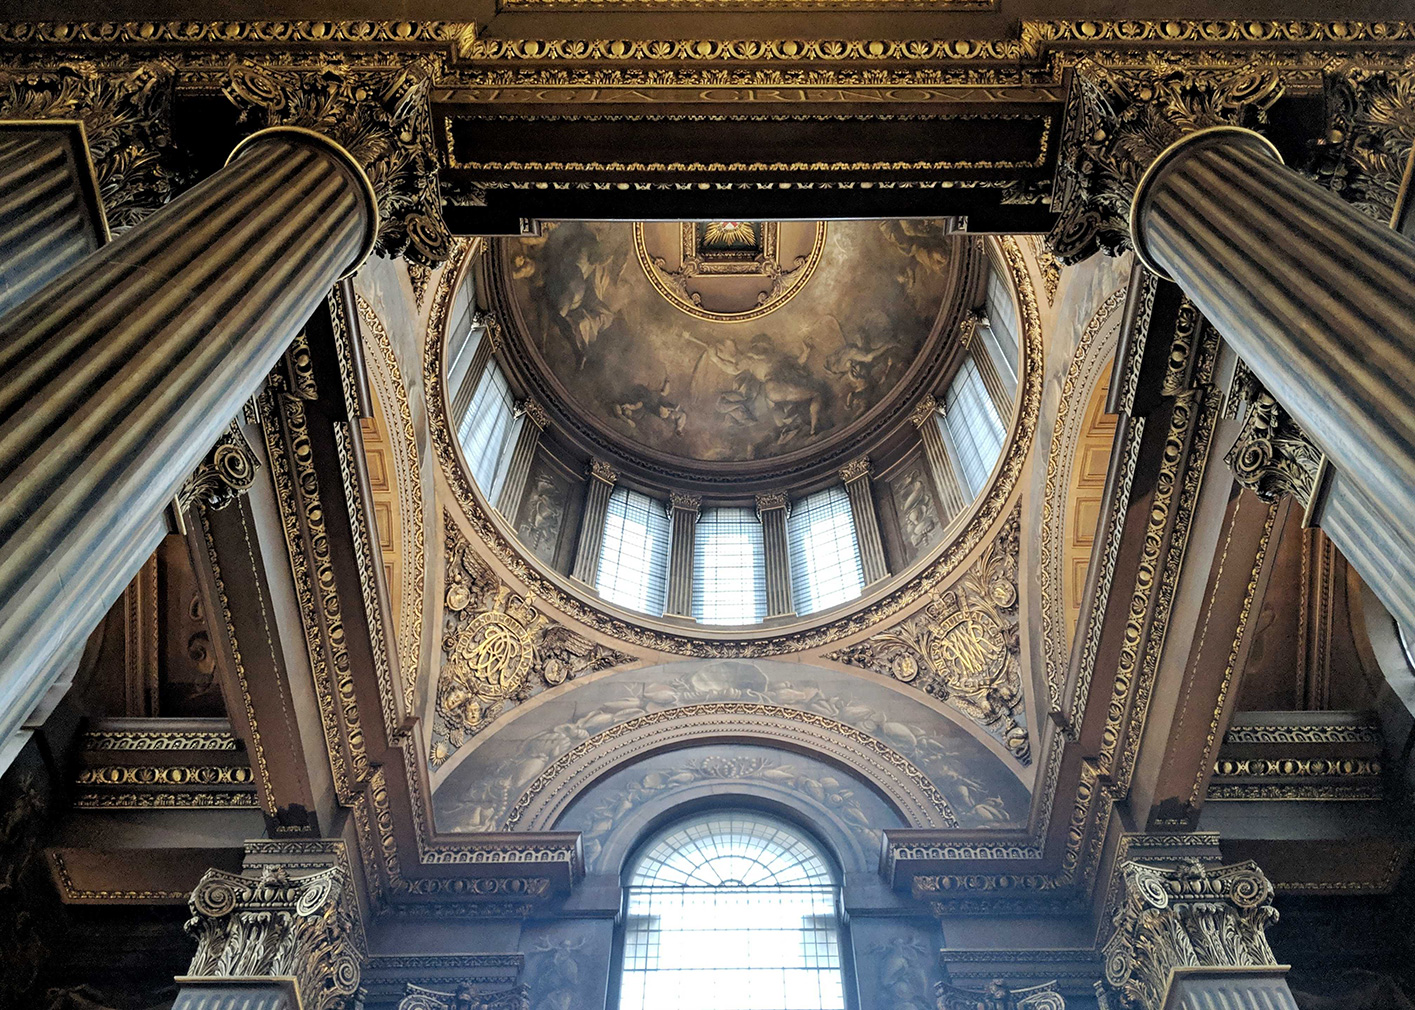 The freshly restored Painted Hall at the Old Royal Naval College